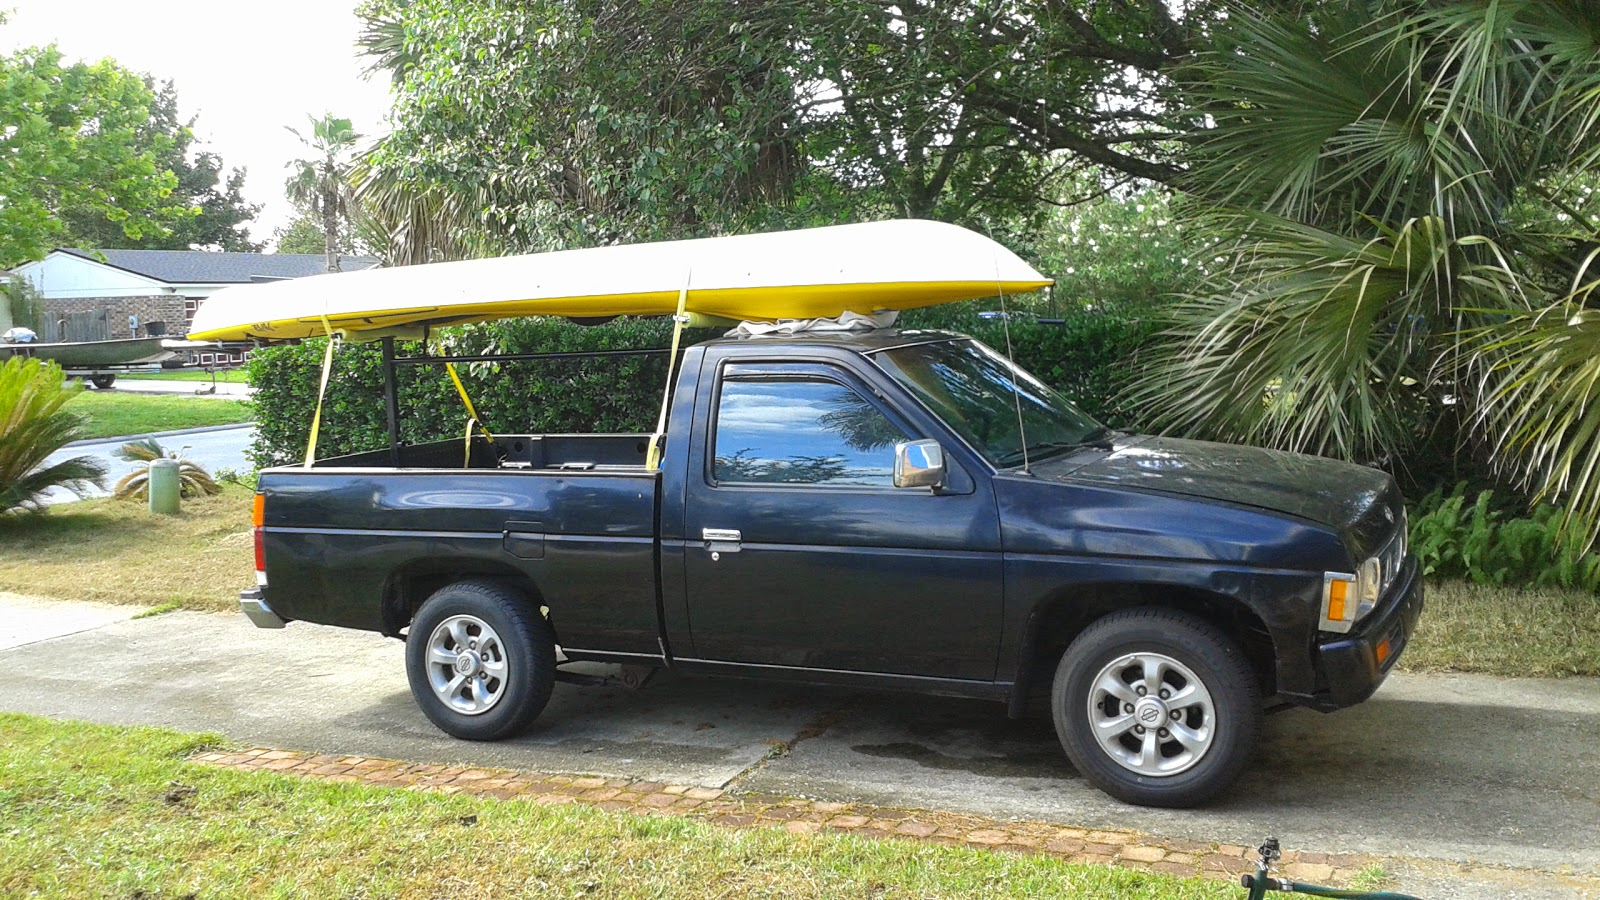 Jose's DIY Ideas : Boat rack